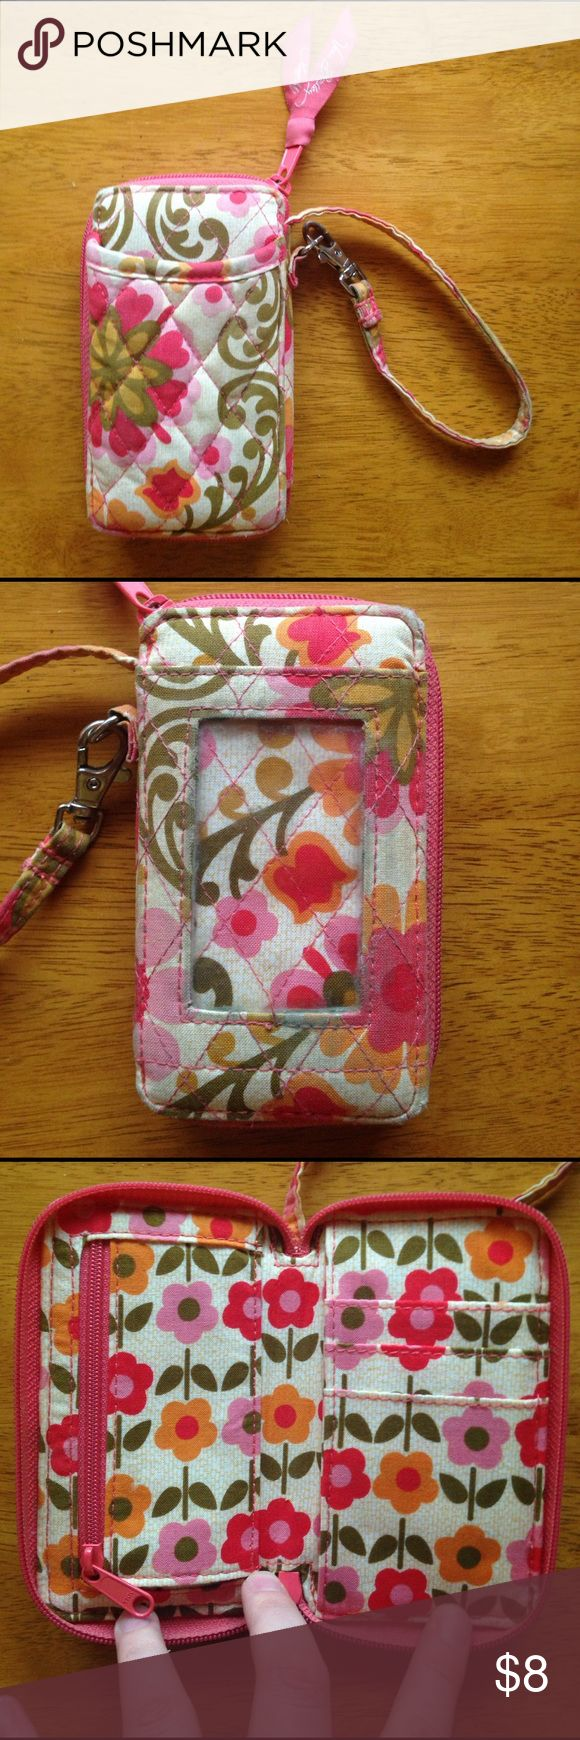 Vera Bradley clutch/wallet Great pattern! Normal wear and gently used condition. Some wear around the ID slot; see picture. Holds a phone and opens into a wallet. Can only do 5% off of two. All money going towards my mission trip. Thank you! Vera Bradley Bags Clutches & Wristlets